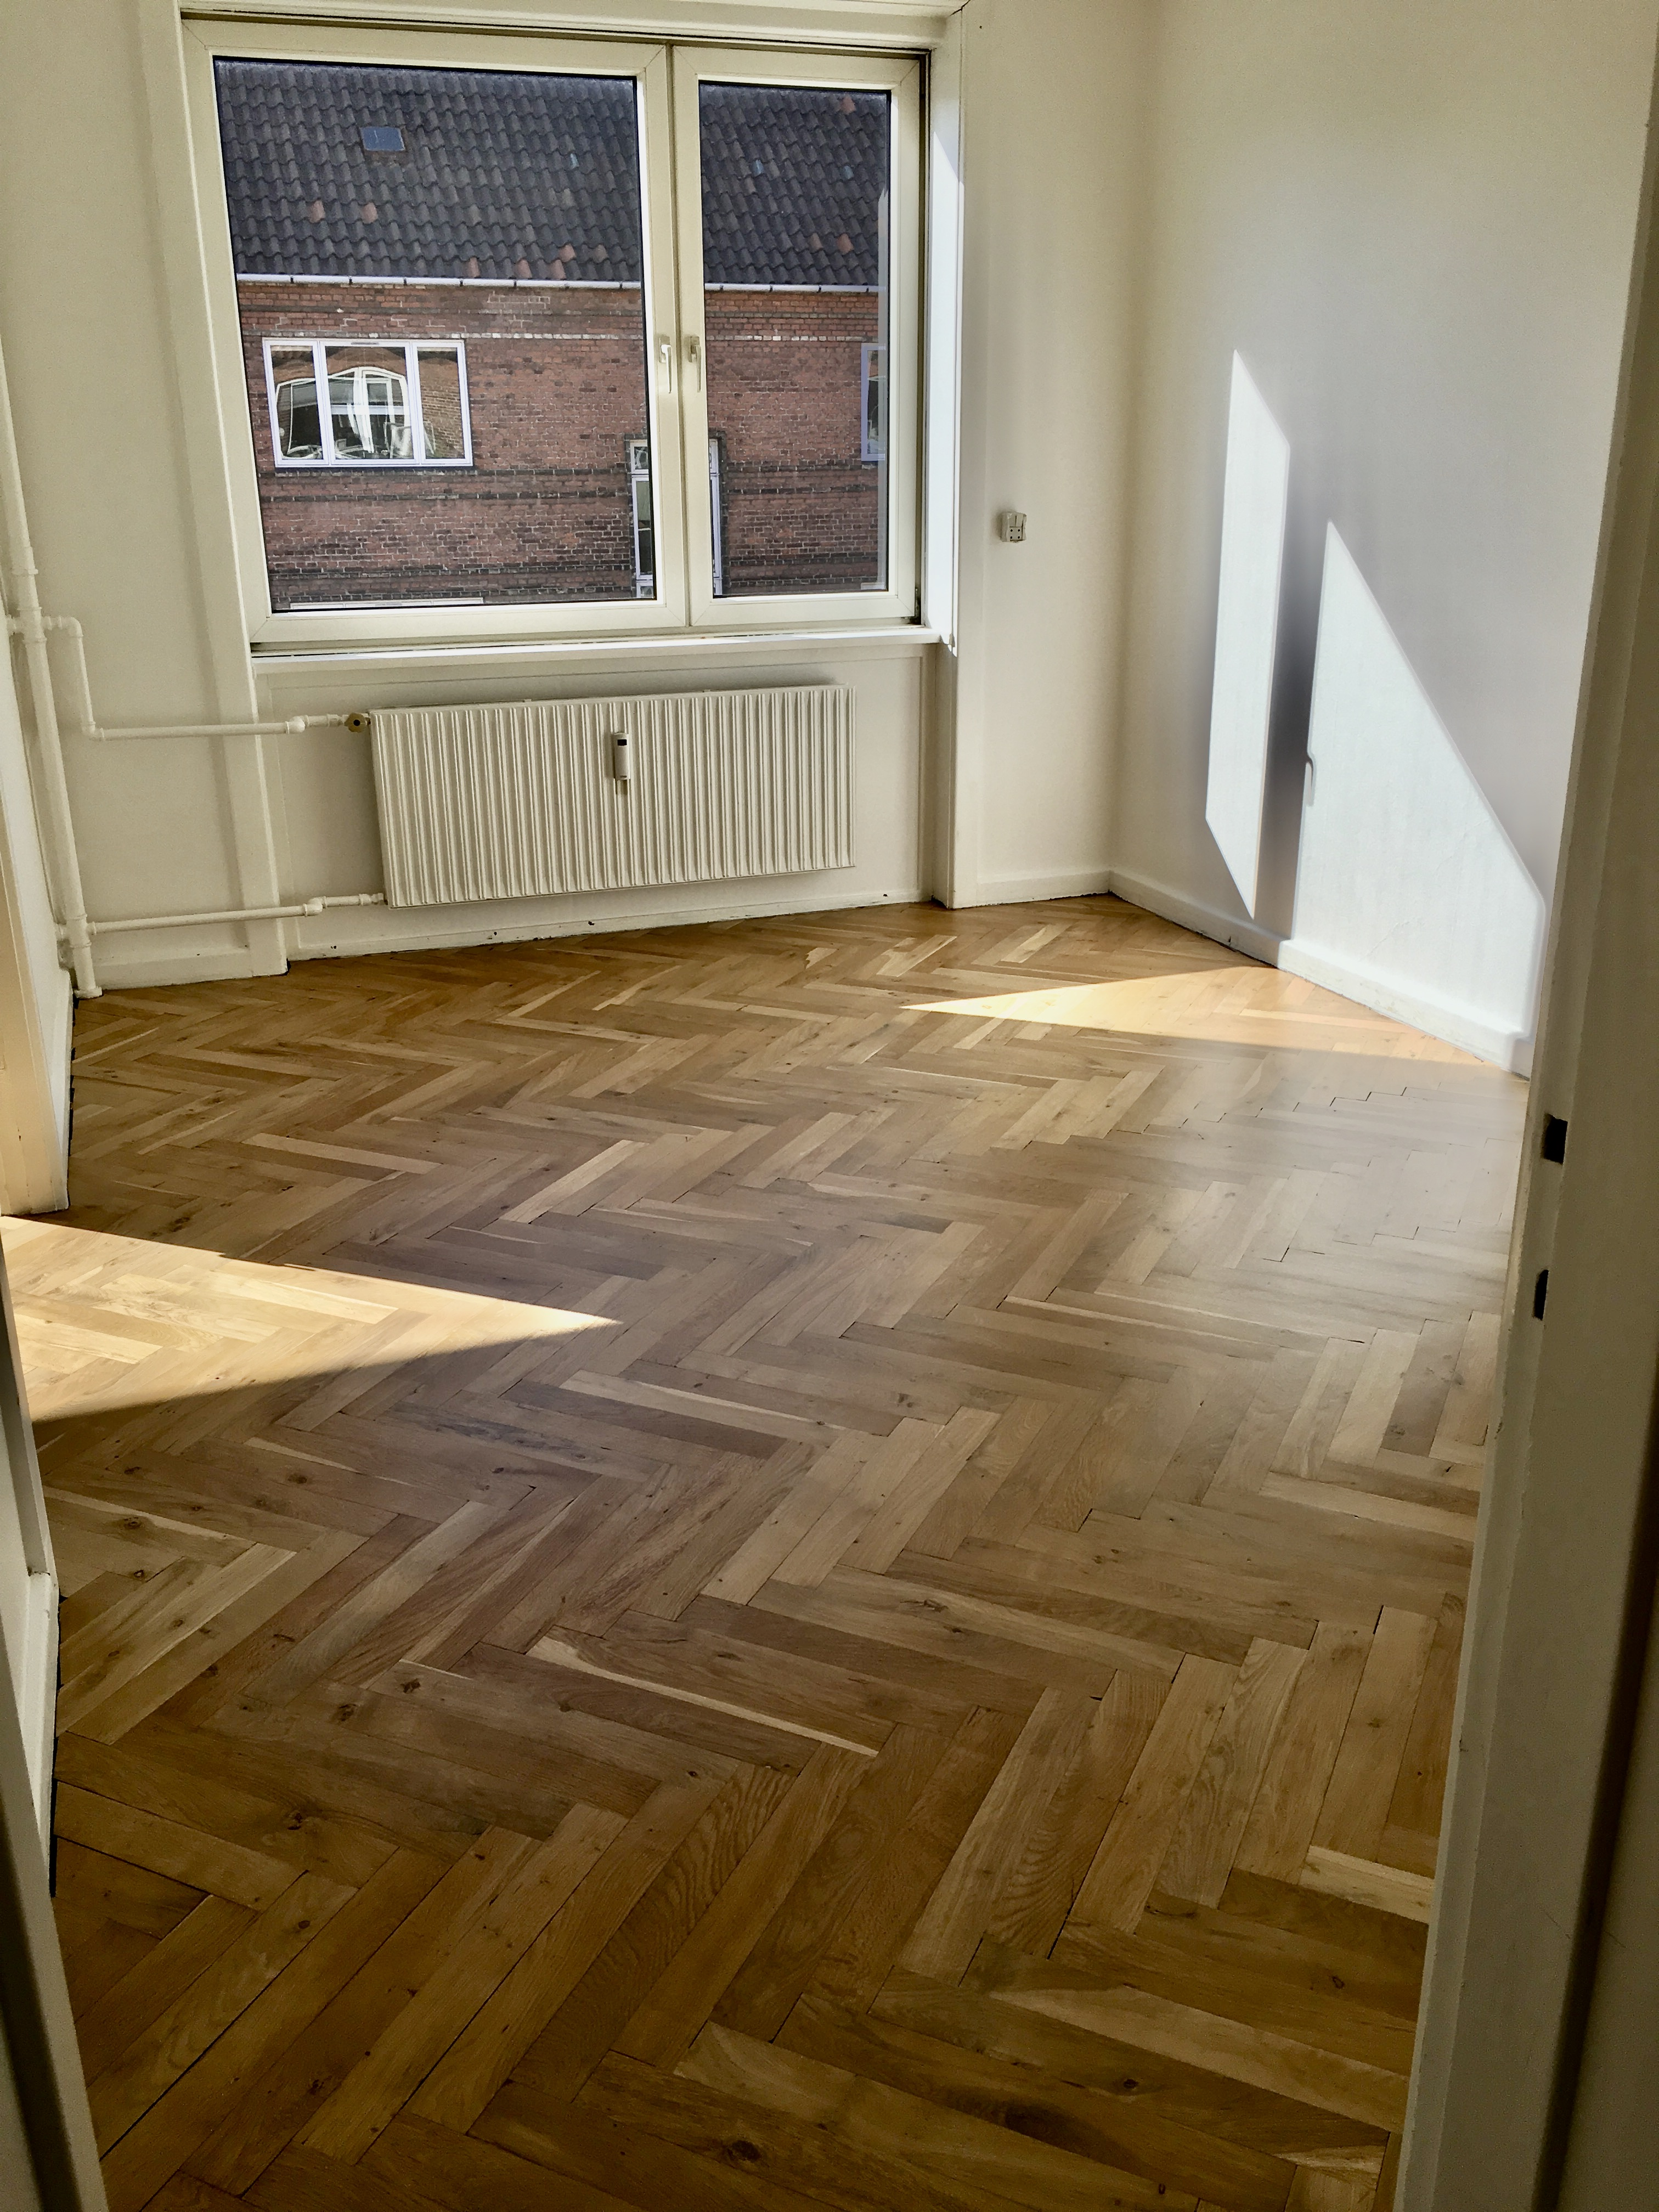 20 m2 room in Valby - 2 trainstops from CPH Central Station